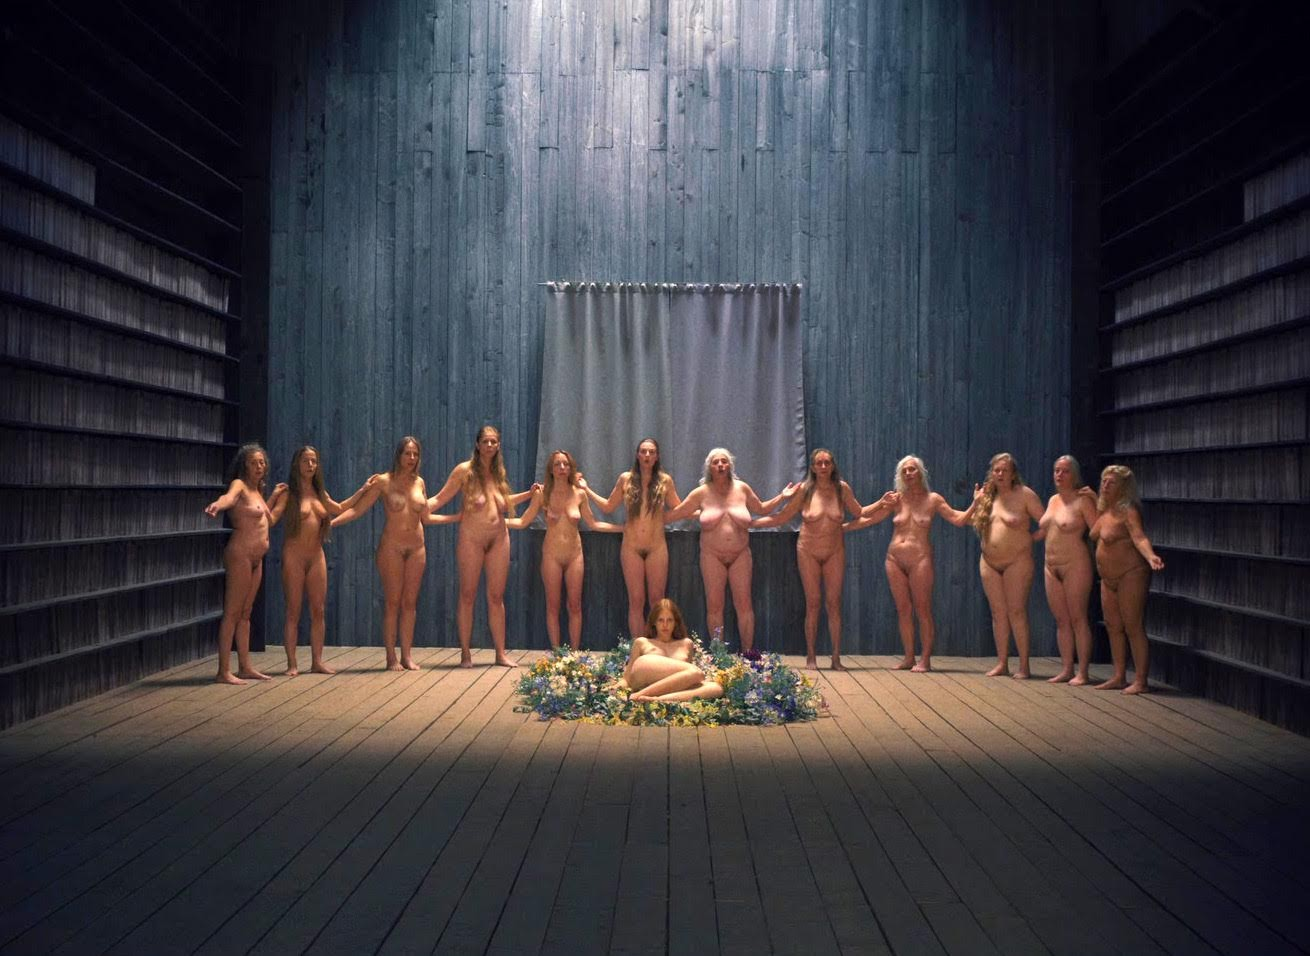 Naked female weight lifters